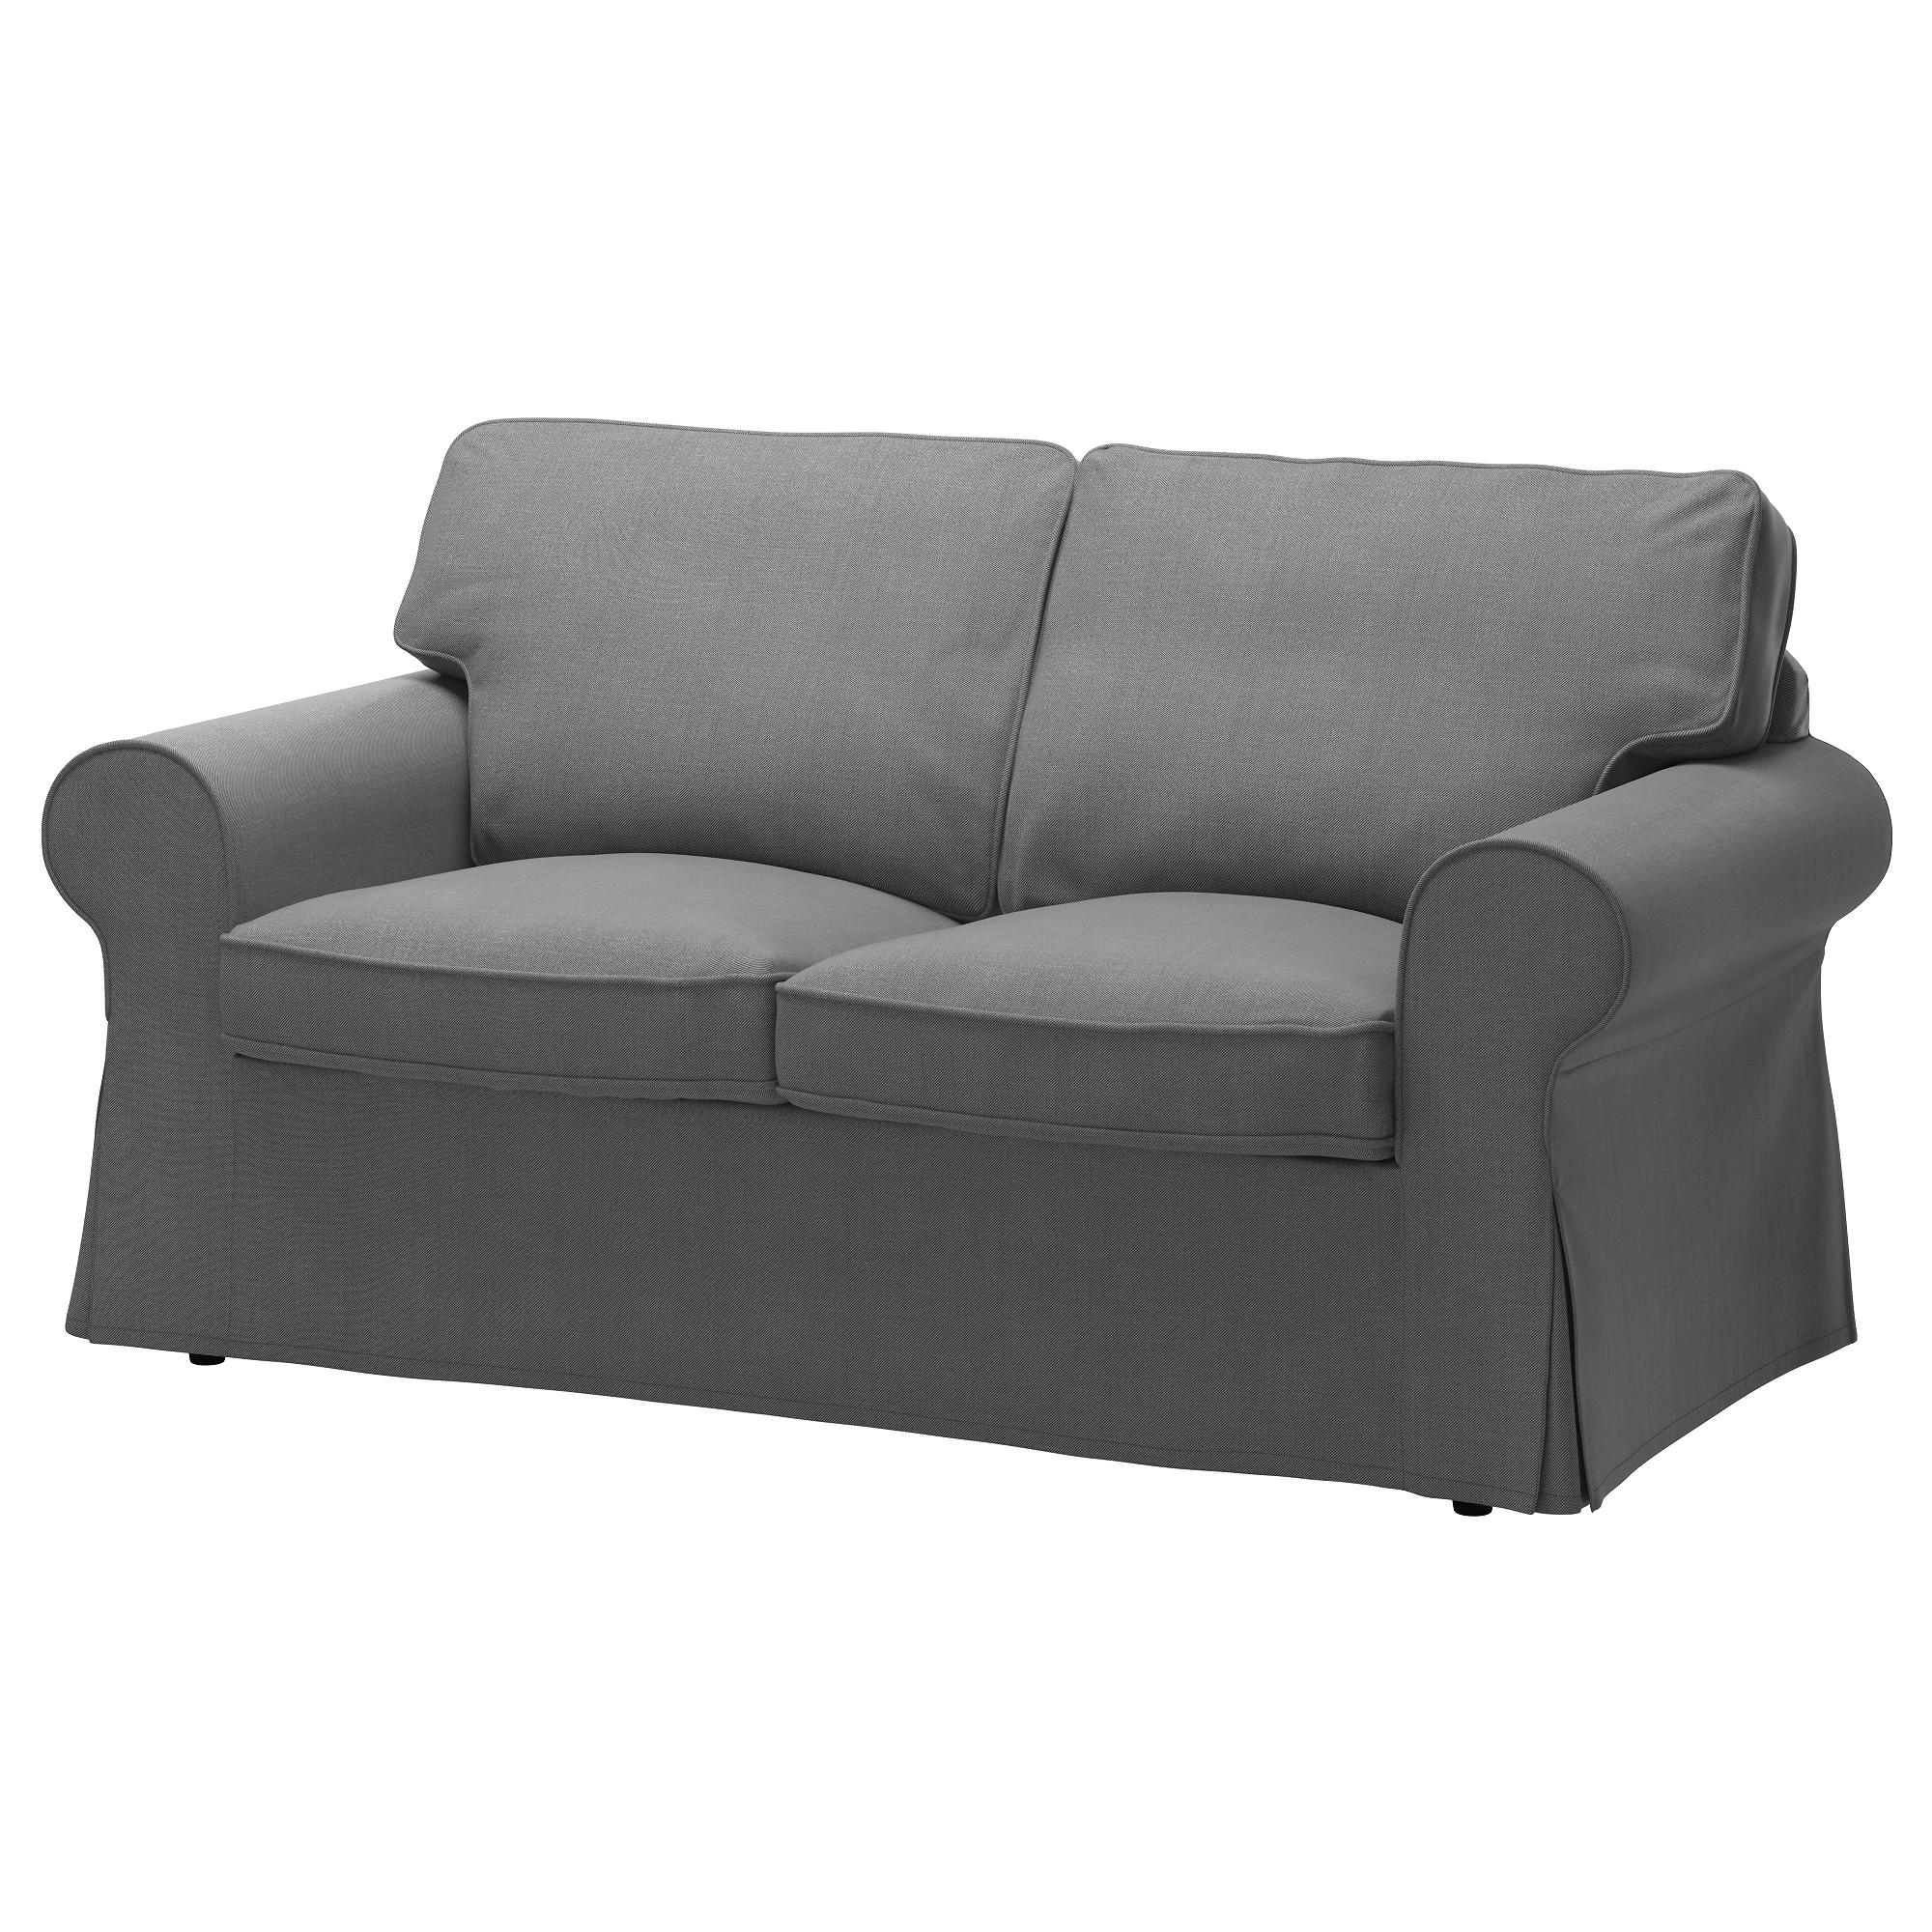 Small Sofa & 2 Seater Sofa | Ikea In 2 Seater Sofas (Image 19 of 20)